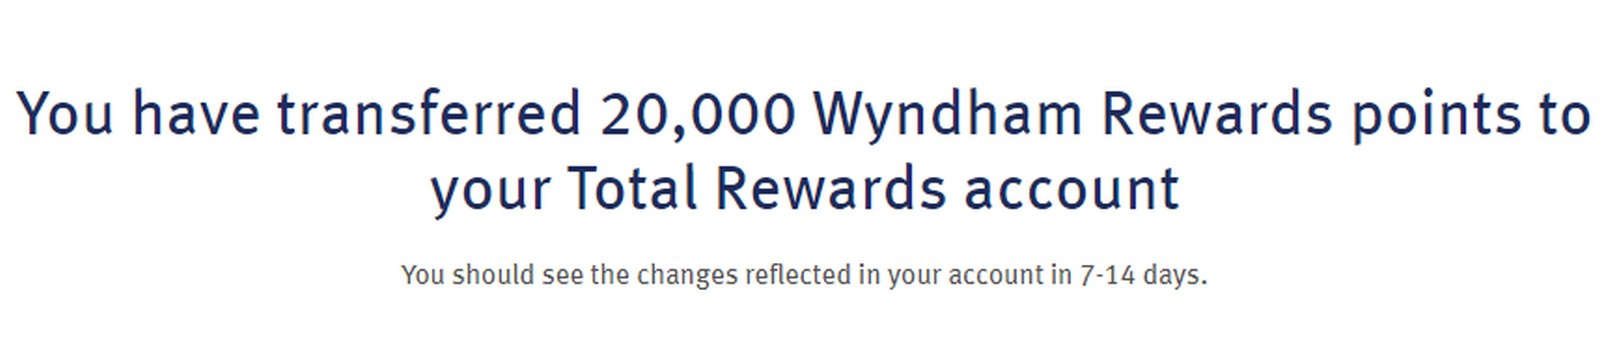 Transfer Points Between Wyndham & Total Rewards